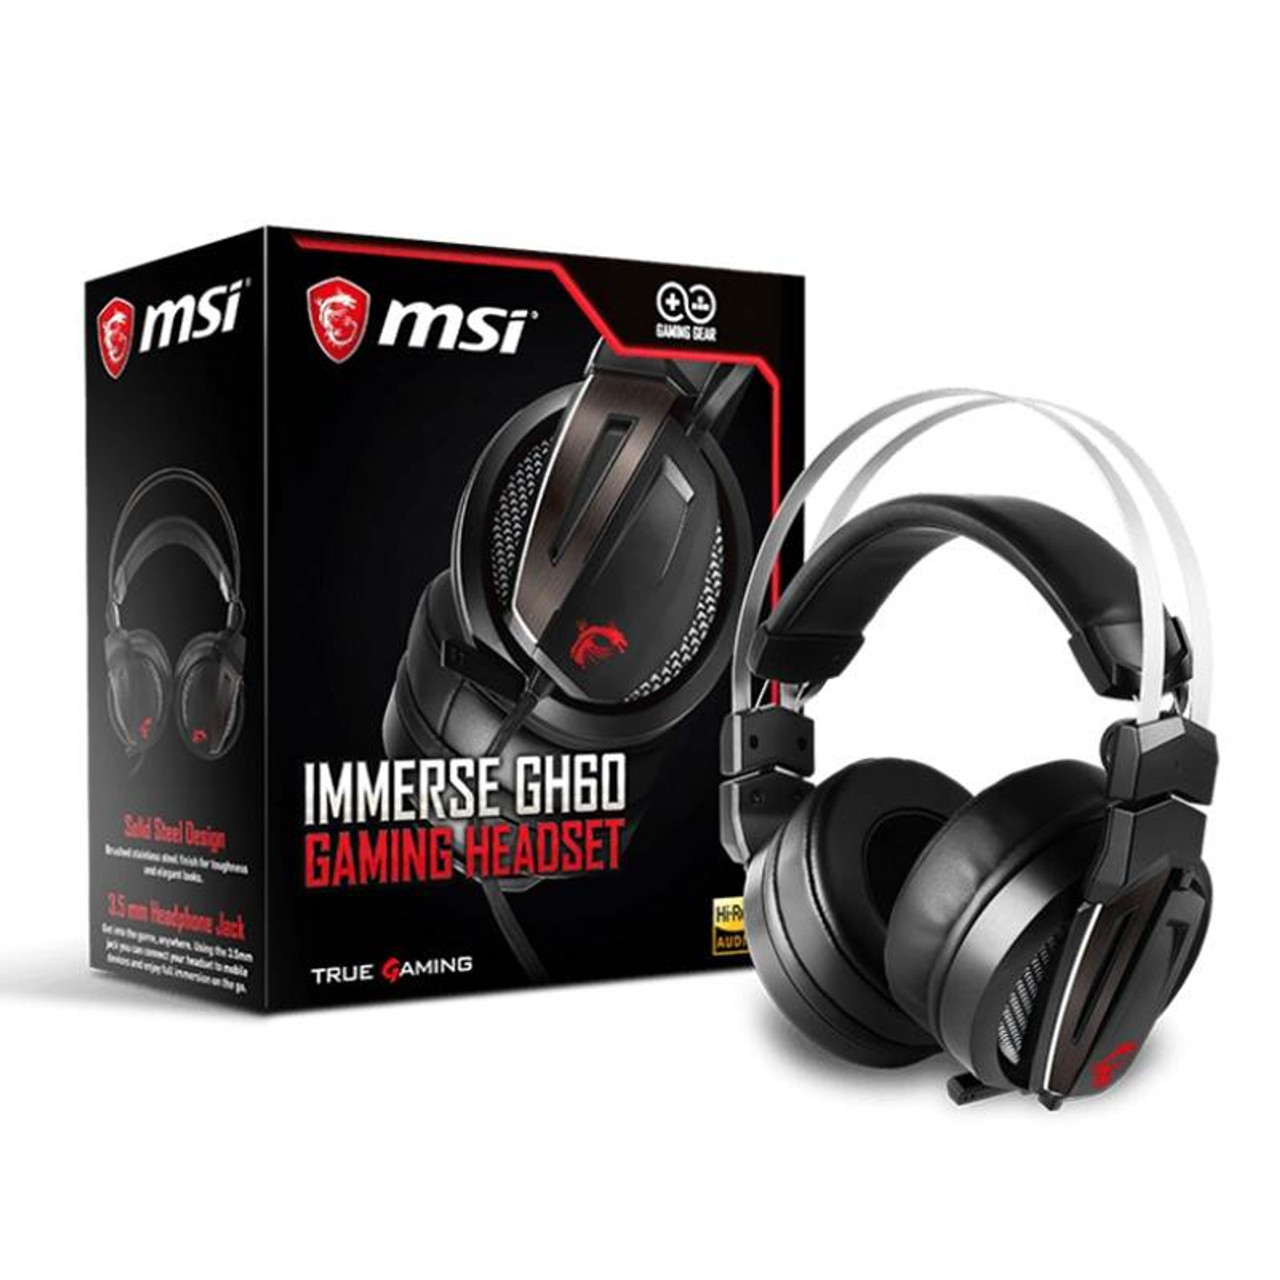 Image for MSI Immerse GH60 Gaming Headset CX Computer Superstore